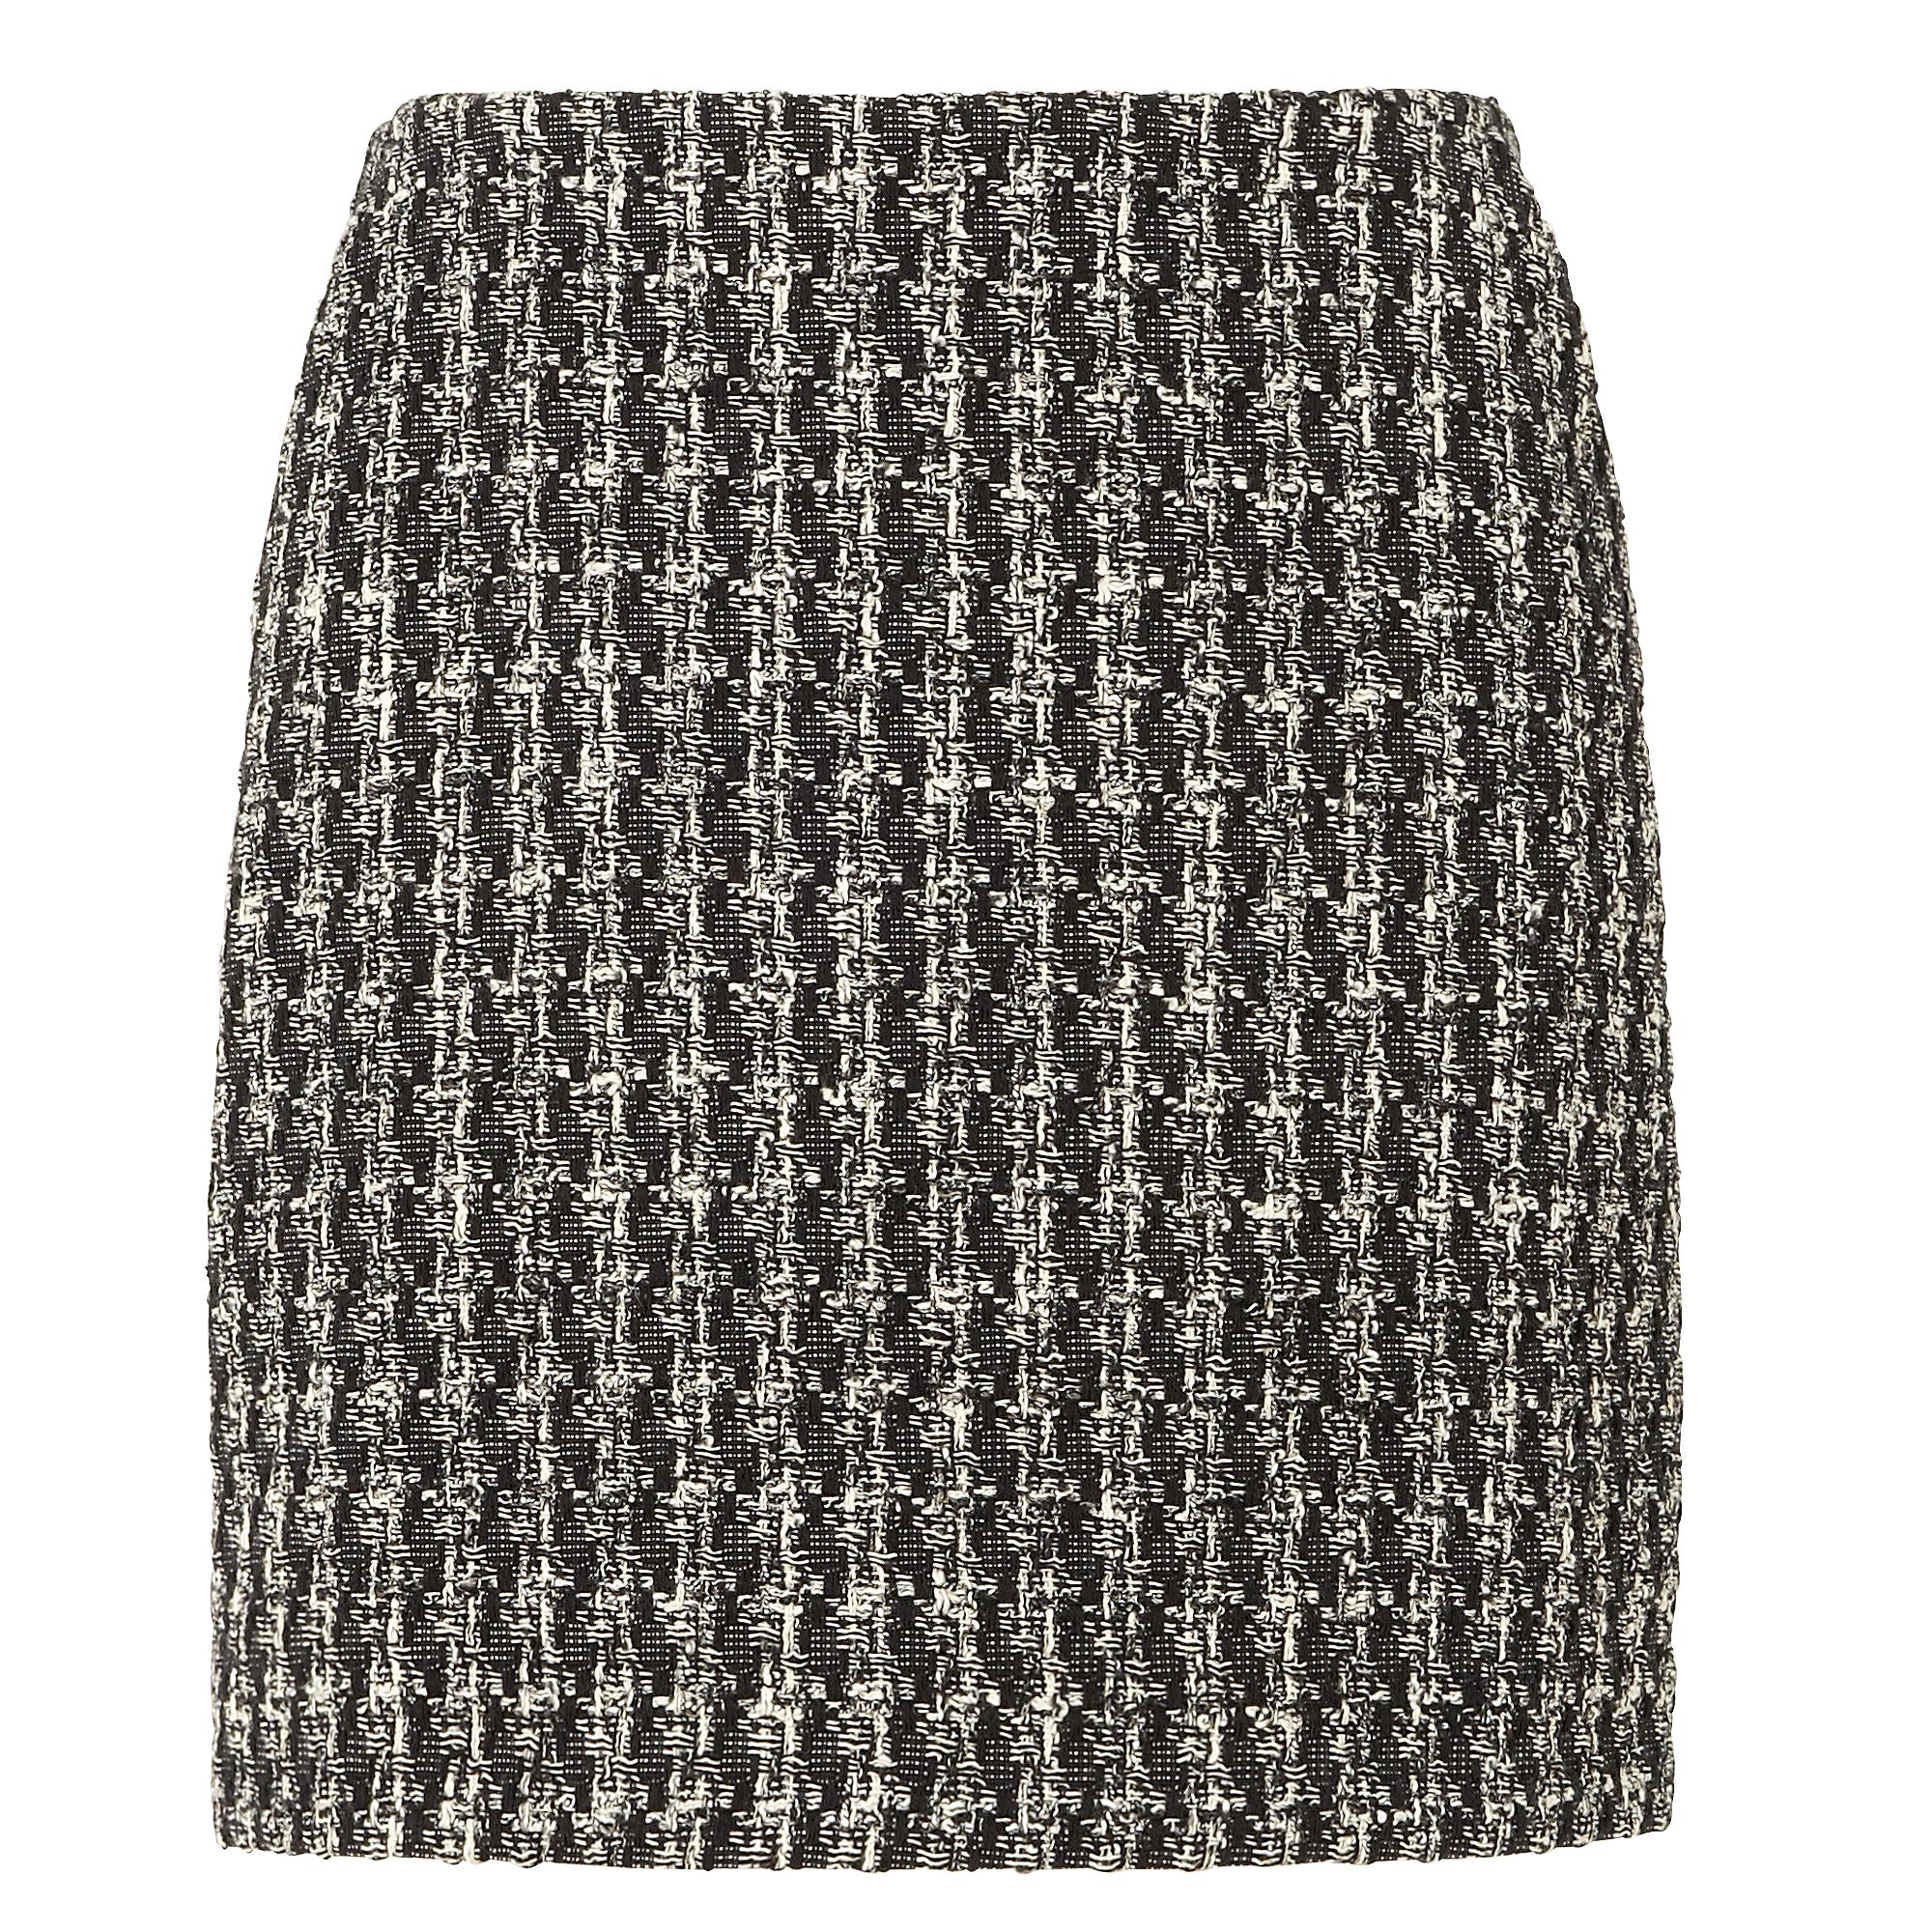 Maria Tweed Skirt